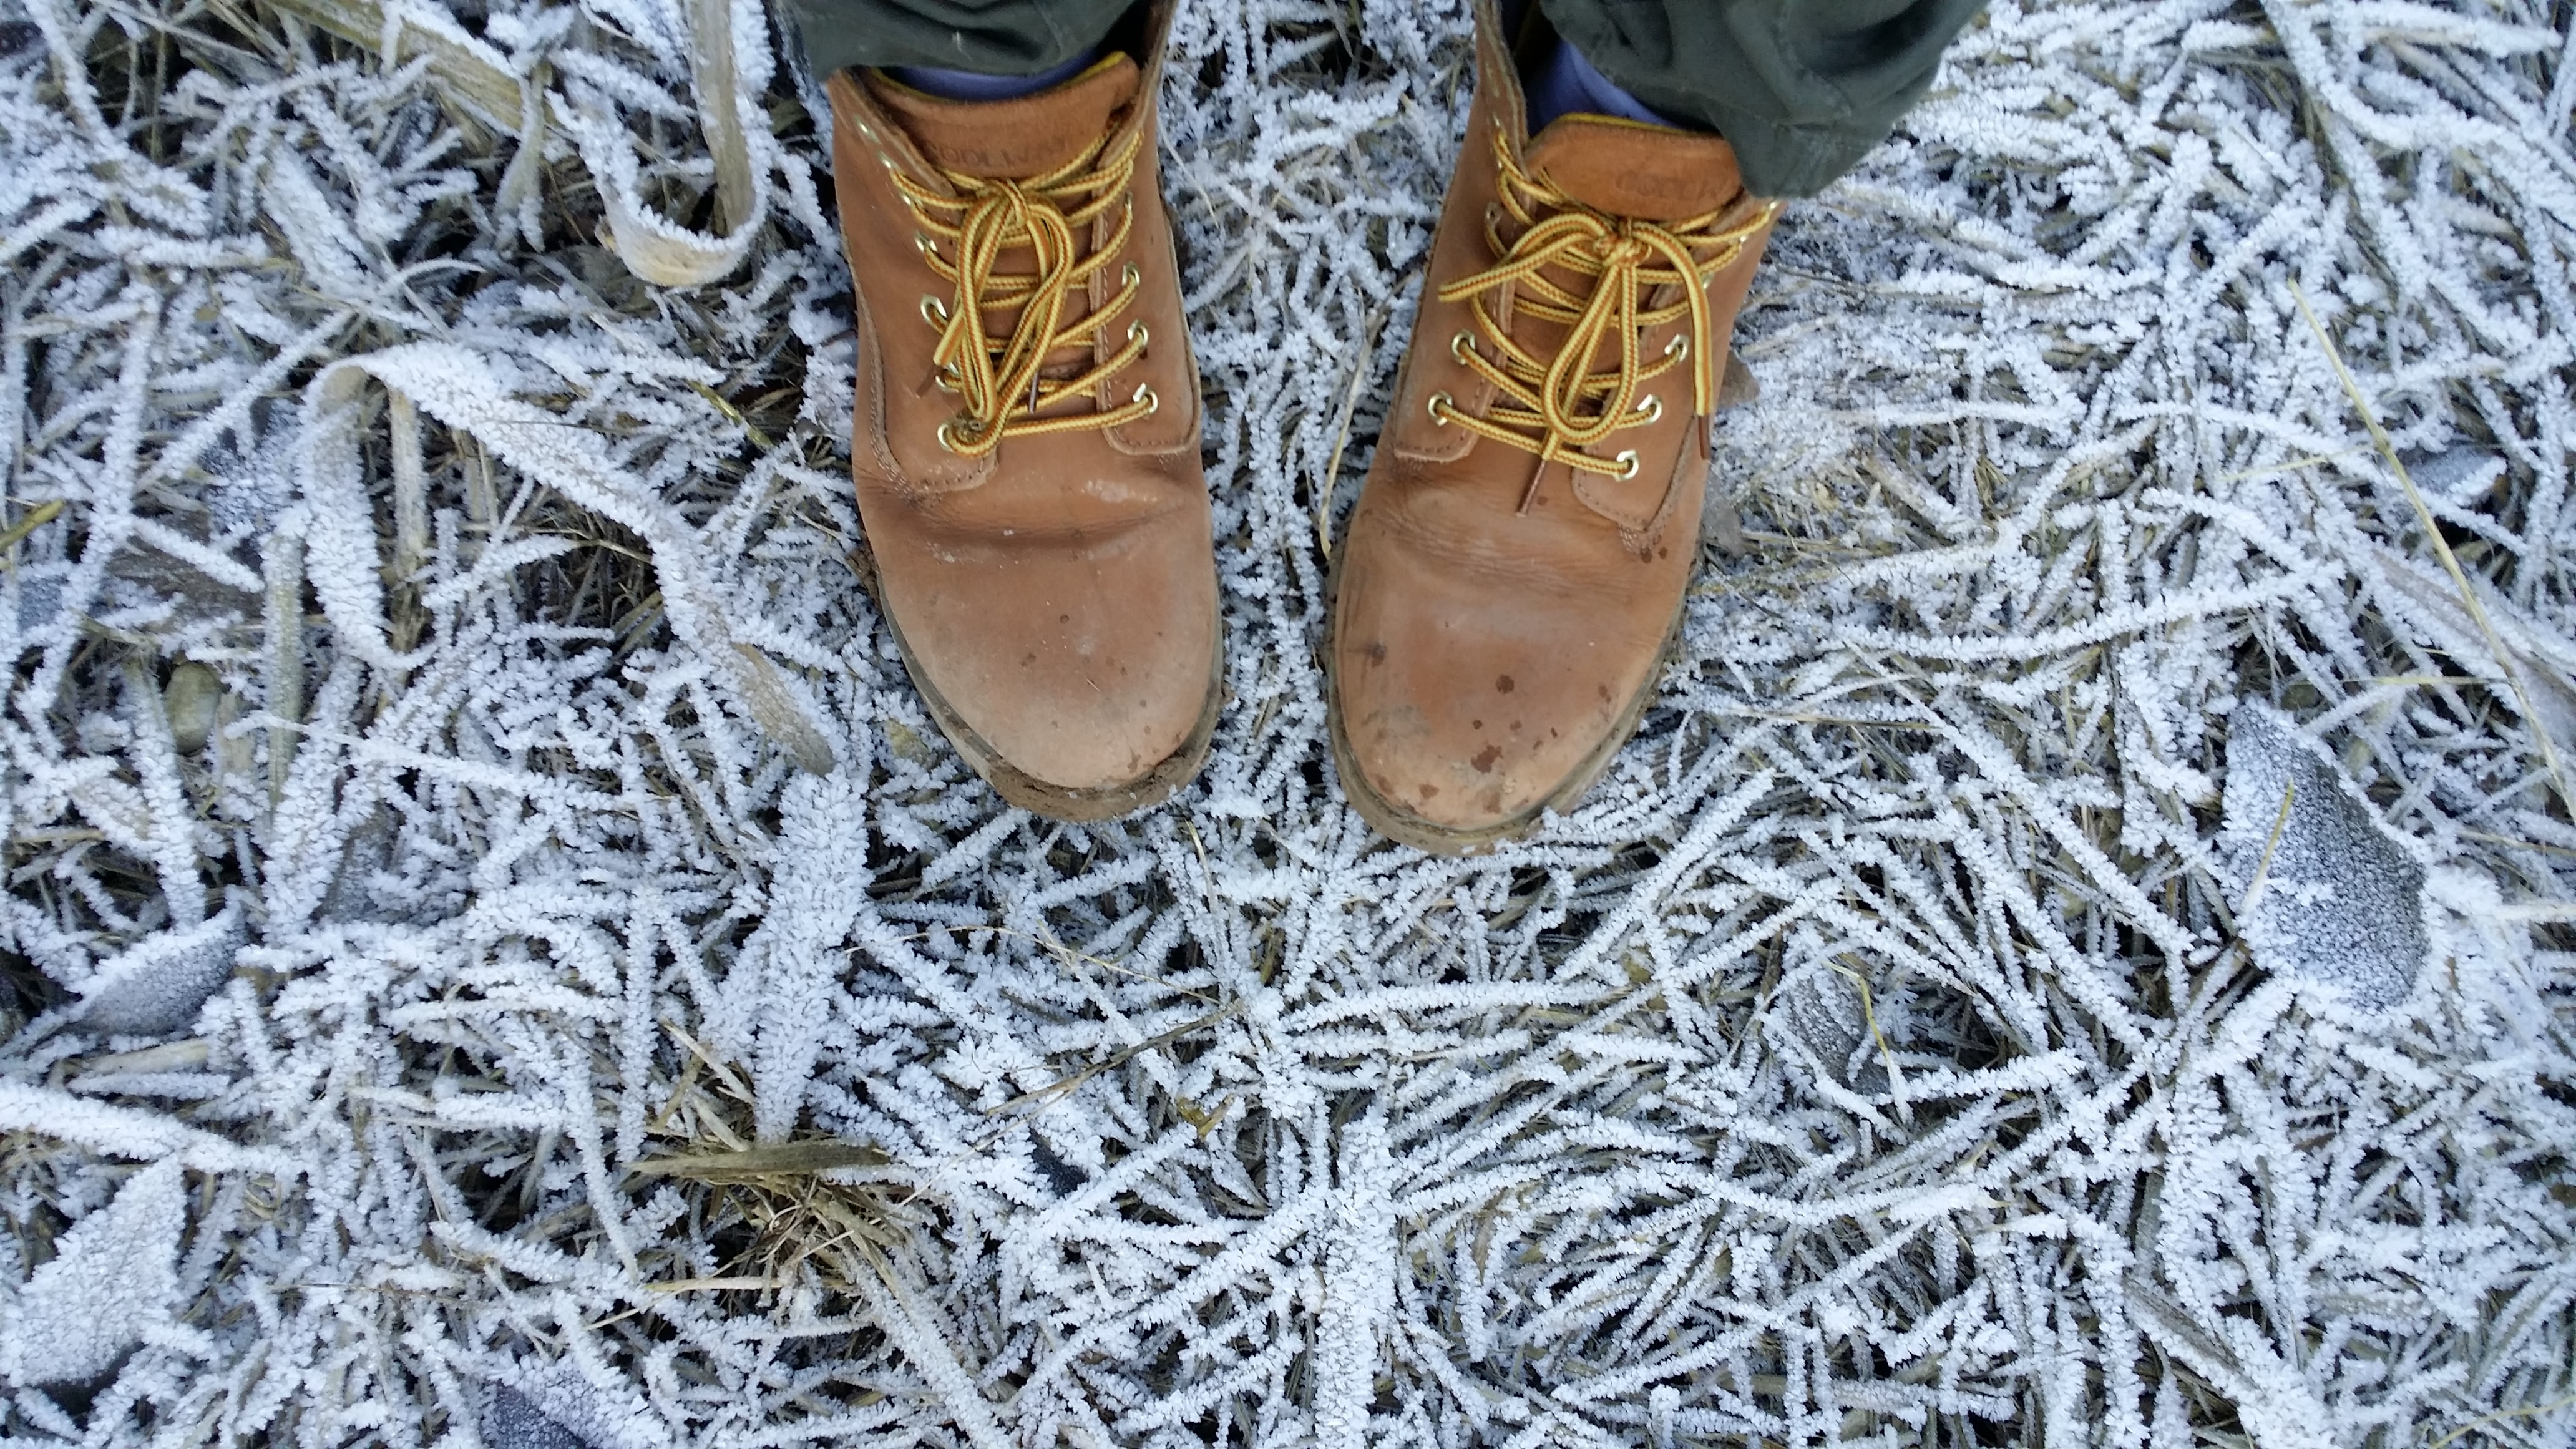 Brown boots laced with orange strings standing upon icy, winter branches